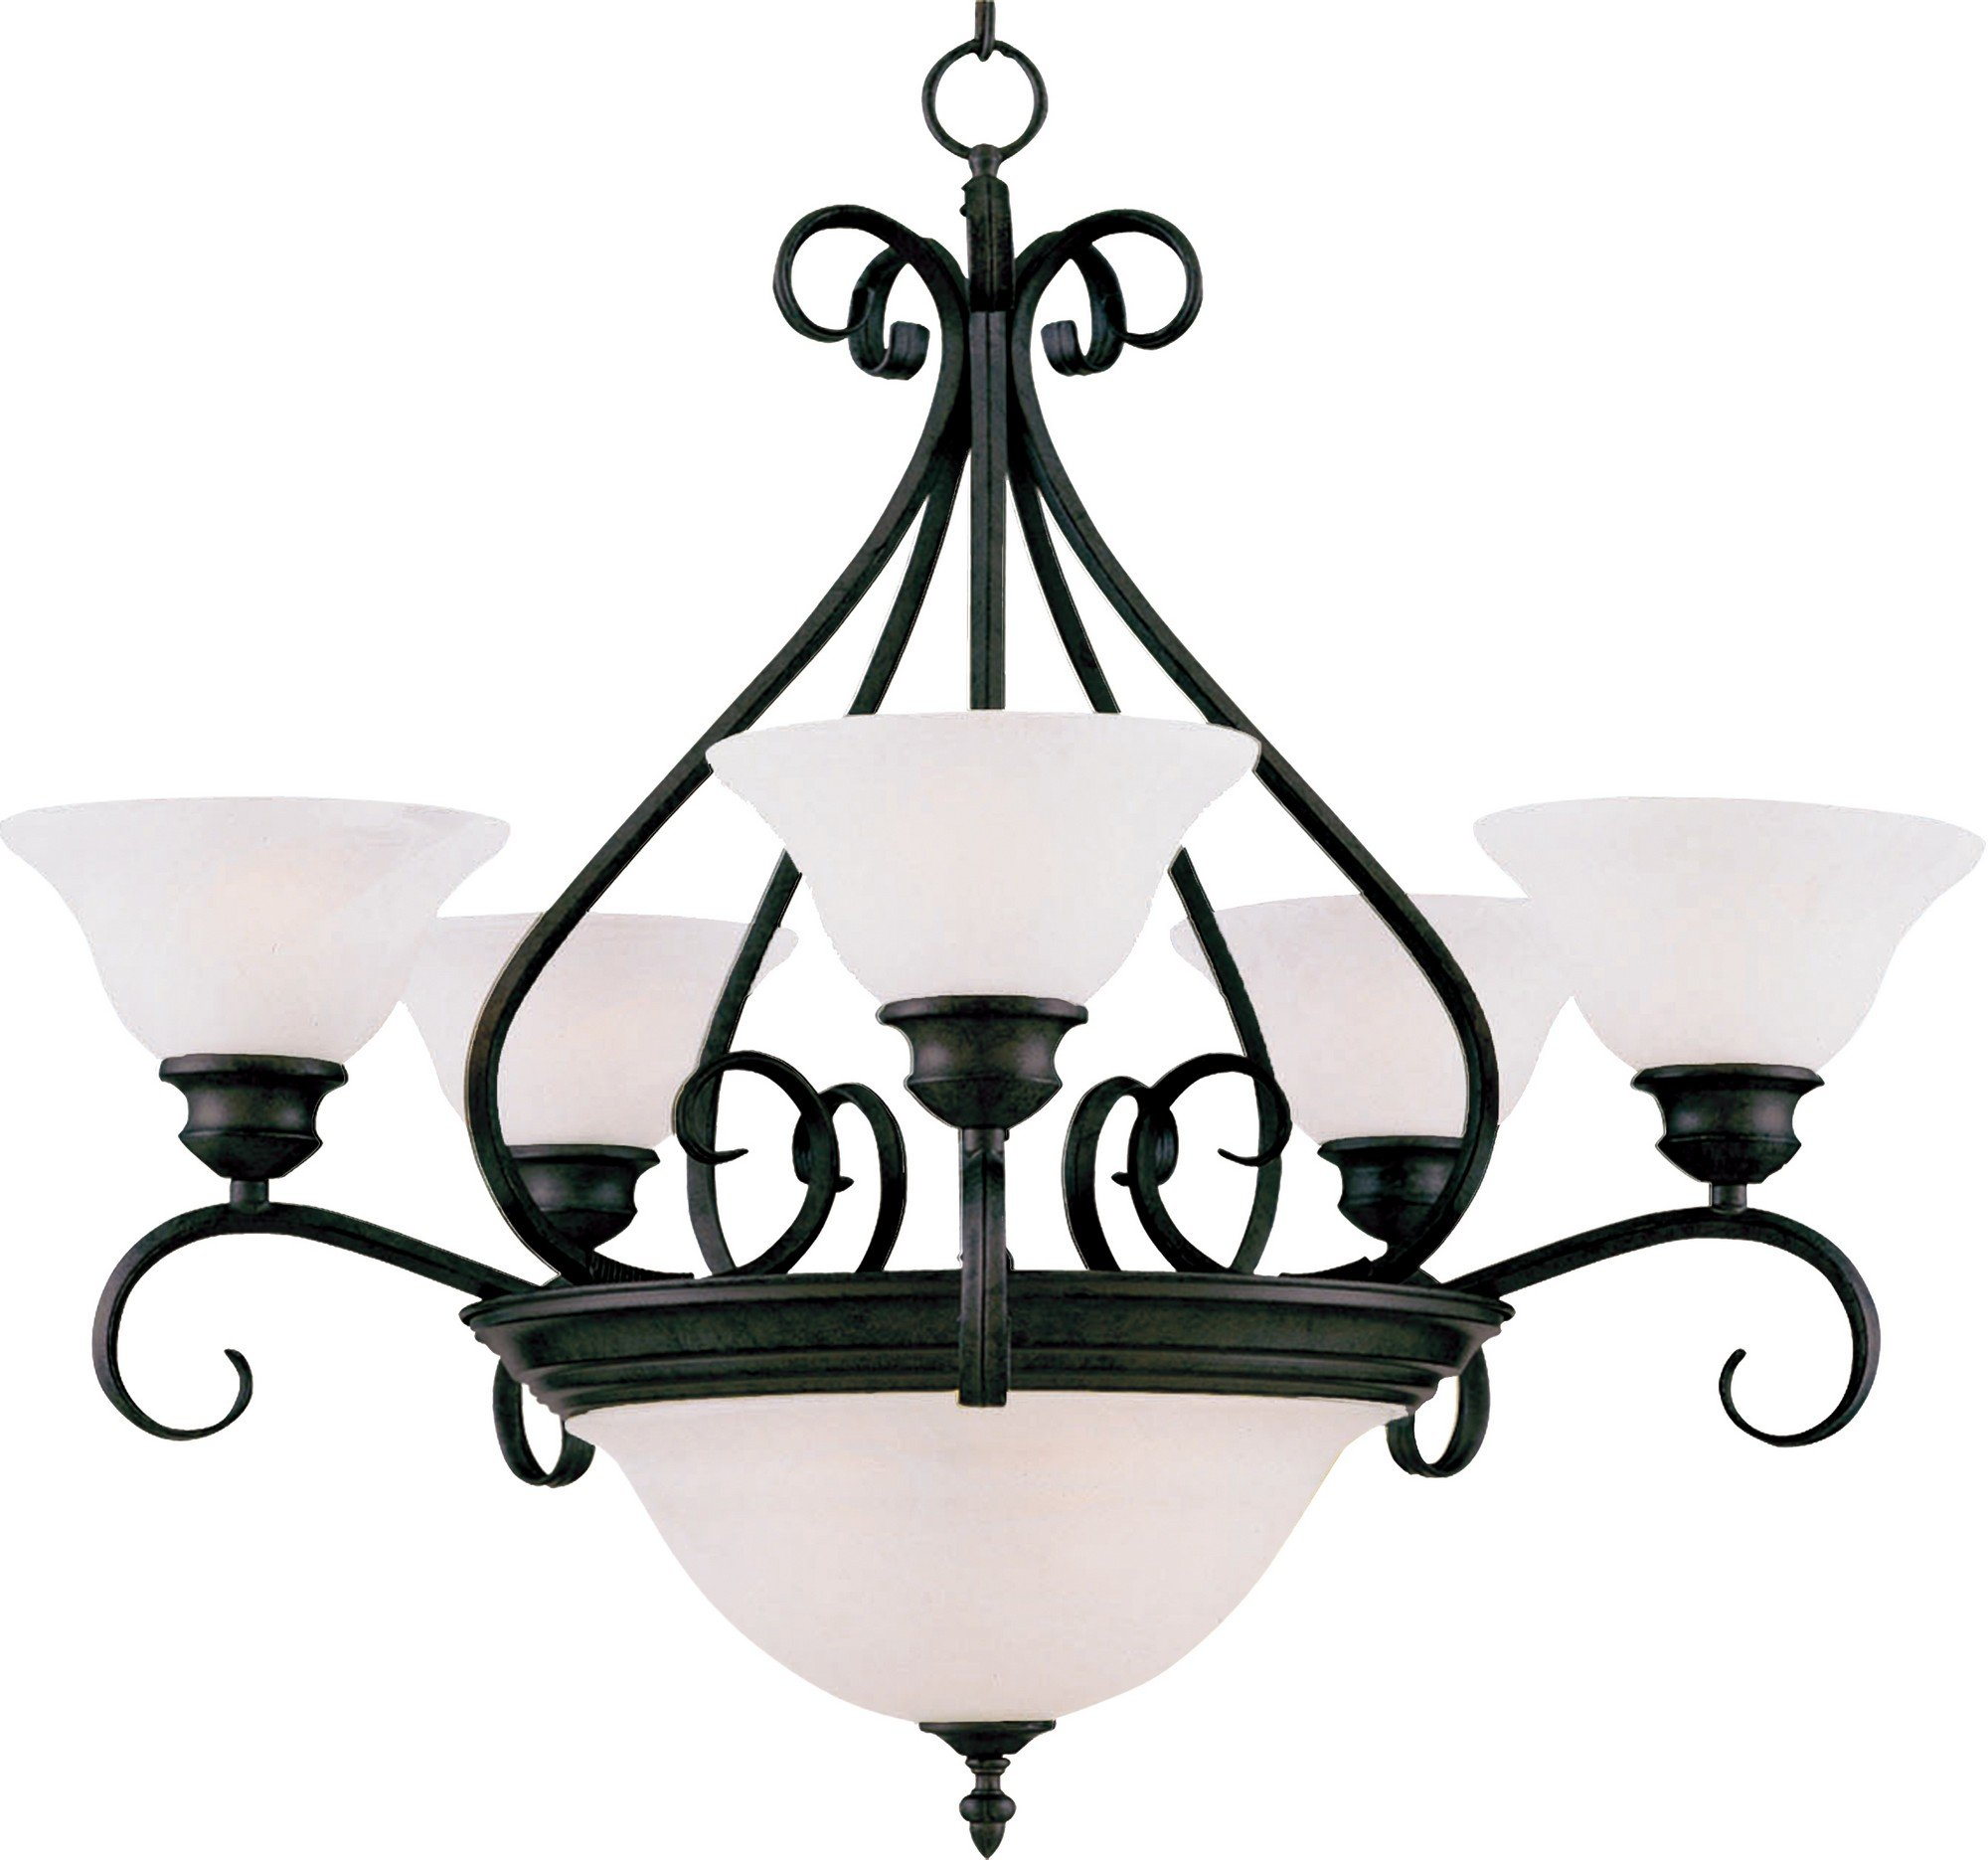 Maxim 2656MRKB Pacific 7-Light Chandelier, Kentucky Bronze Finish, Marble Glass, MB Incandescent Incandescent Bulb , 60W Max., Dry Safety Rating, Standard Dimmable, Opal Glass Shade Material, Rated Lumens